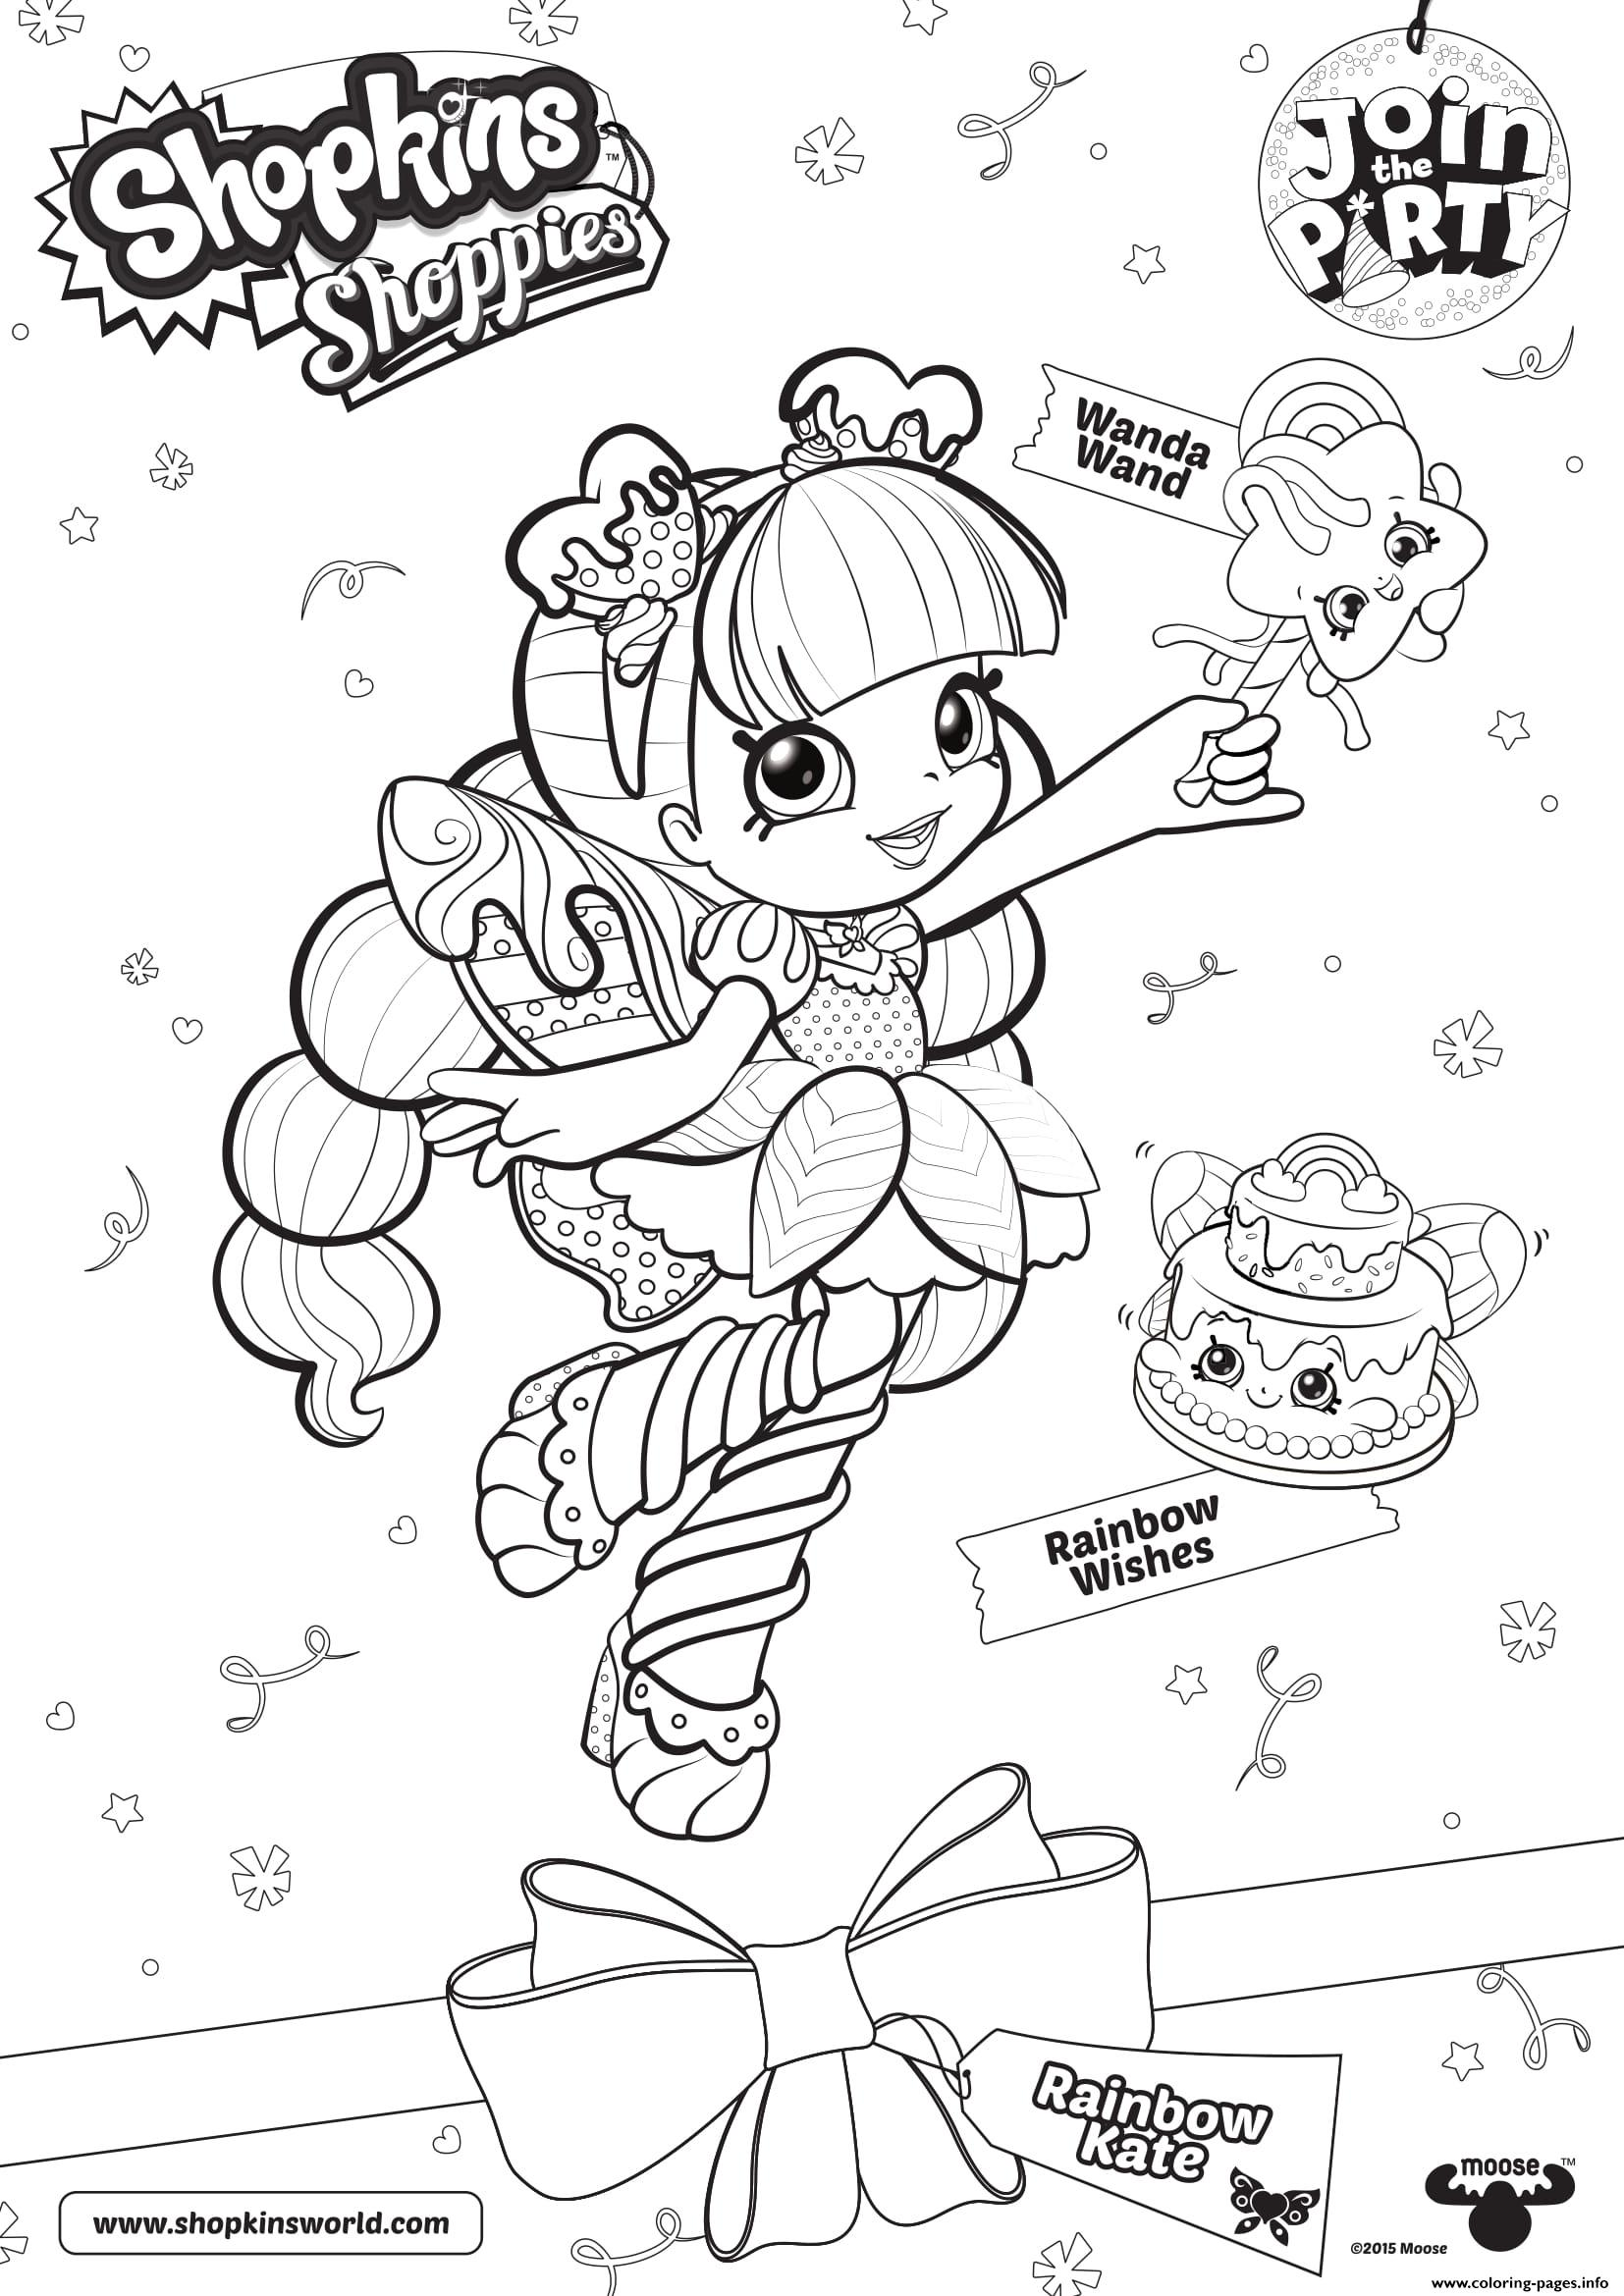 Shopkins Doll Rainbow Kate 1 coloring pages